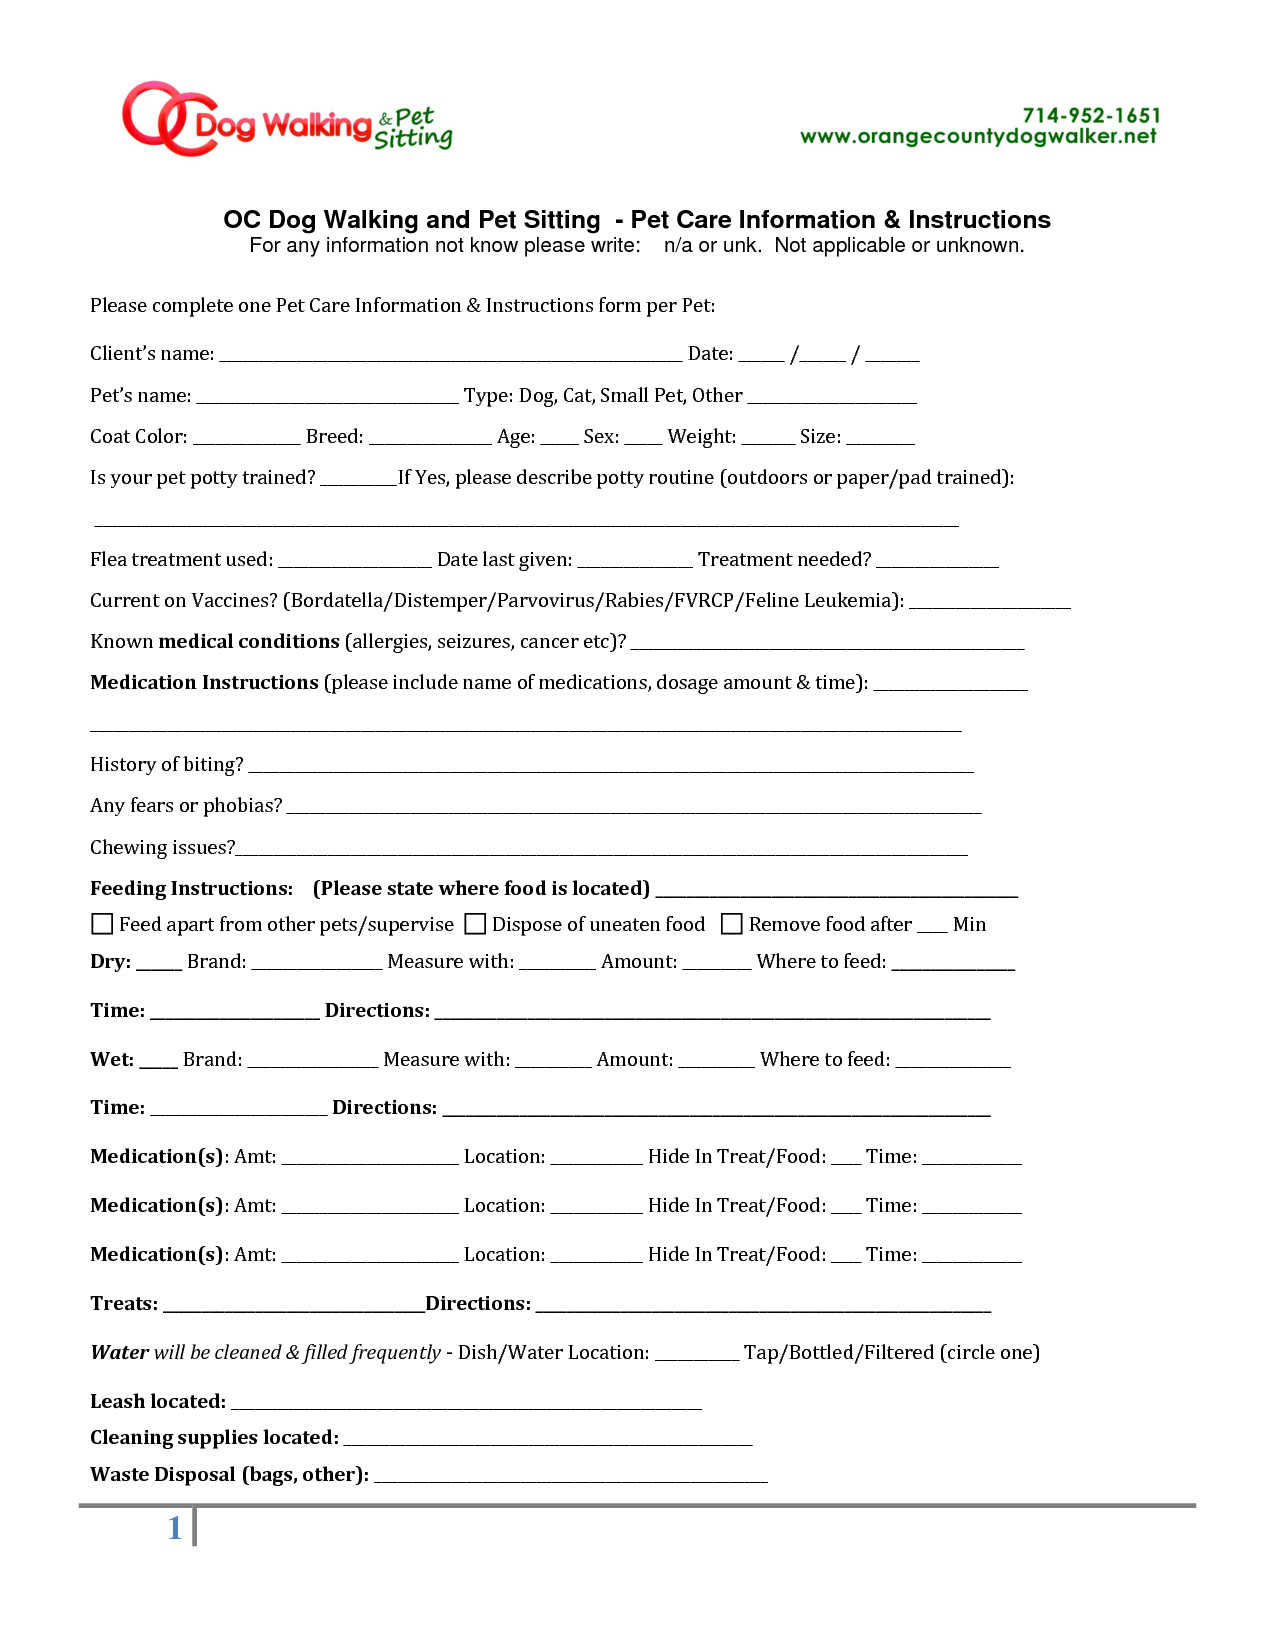 veterinary forms templates - pet sitting instruction template free oc dog walking and